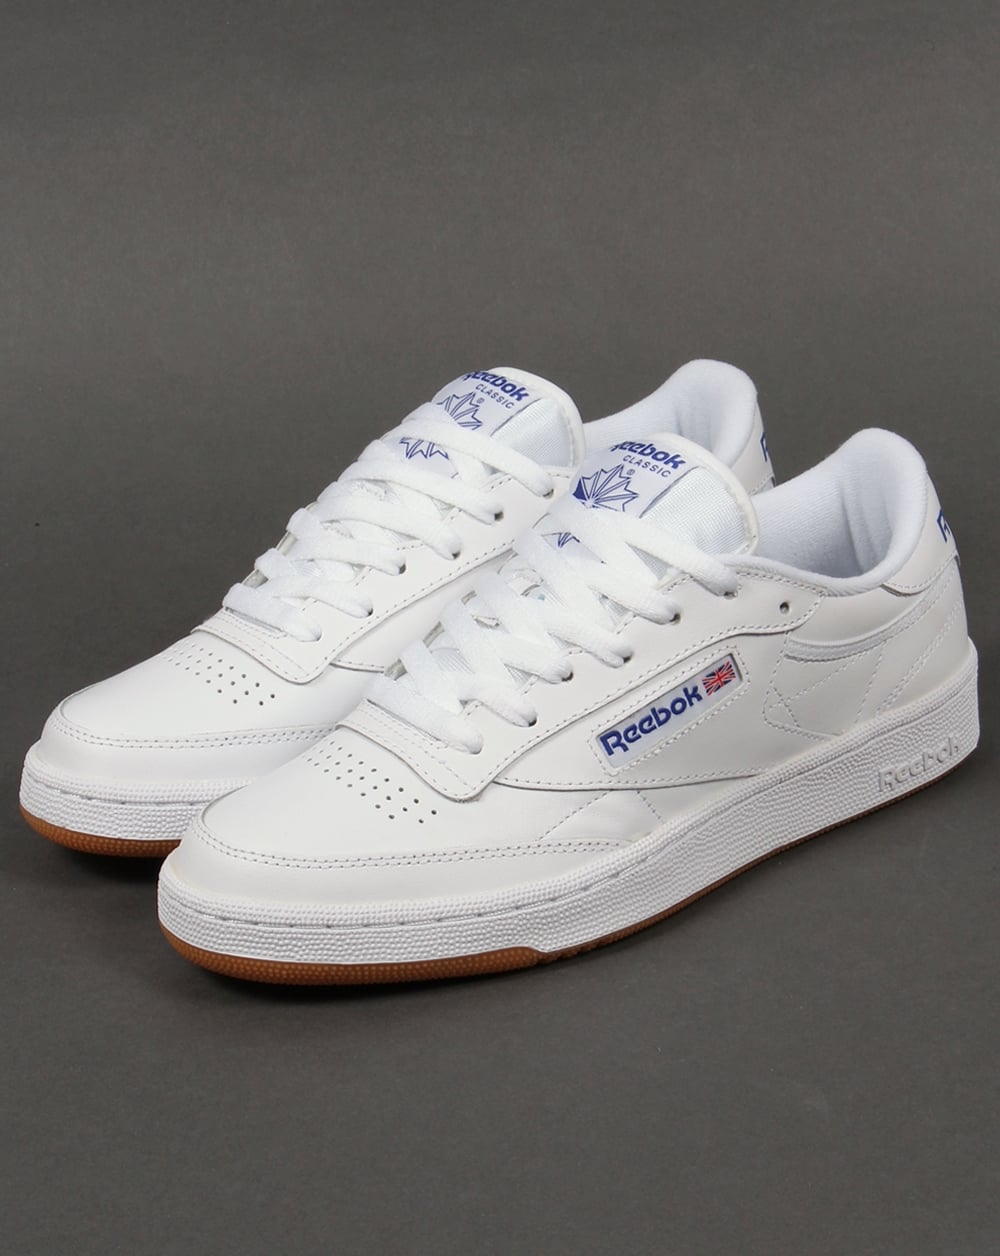 092ccacf7074a6 Reebok Club C 85 Trainers White Royal Gum